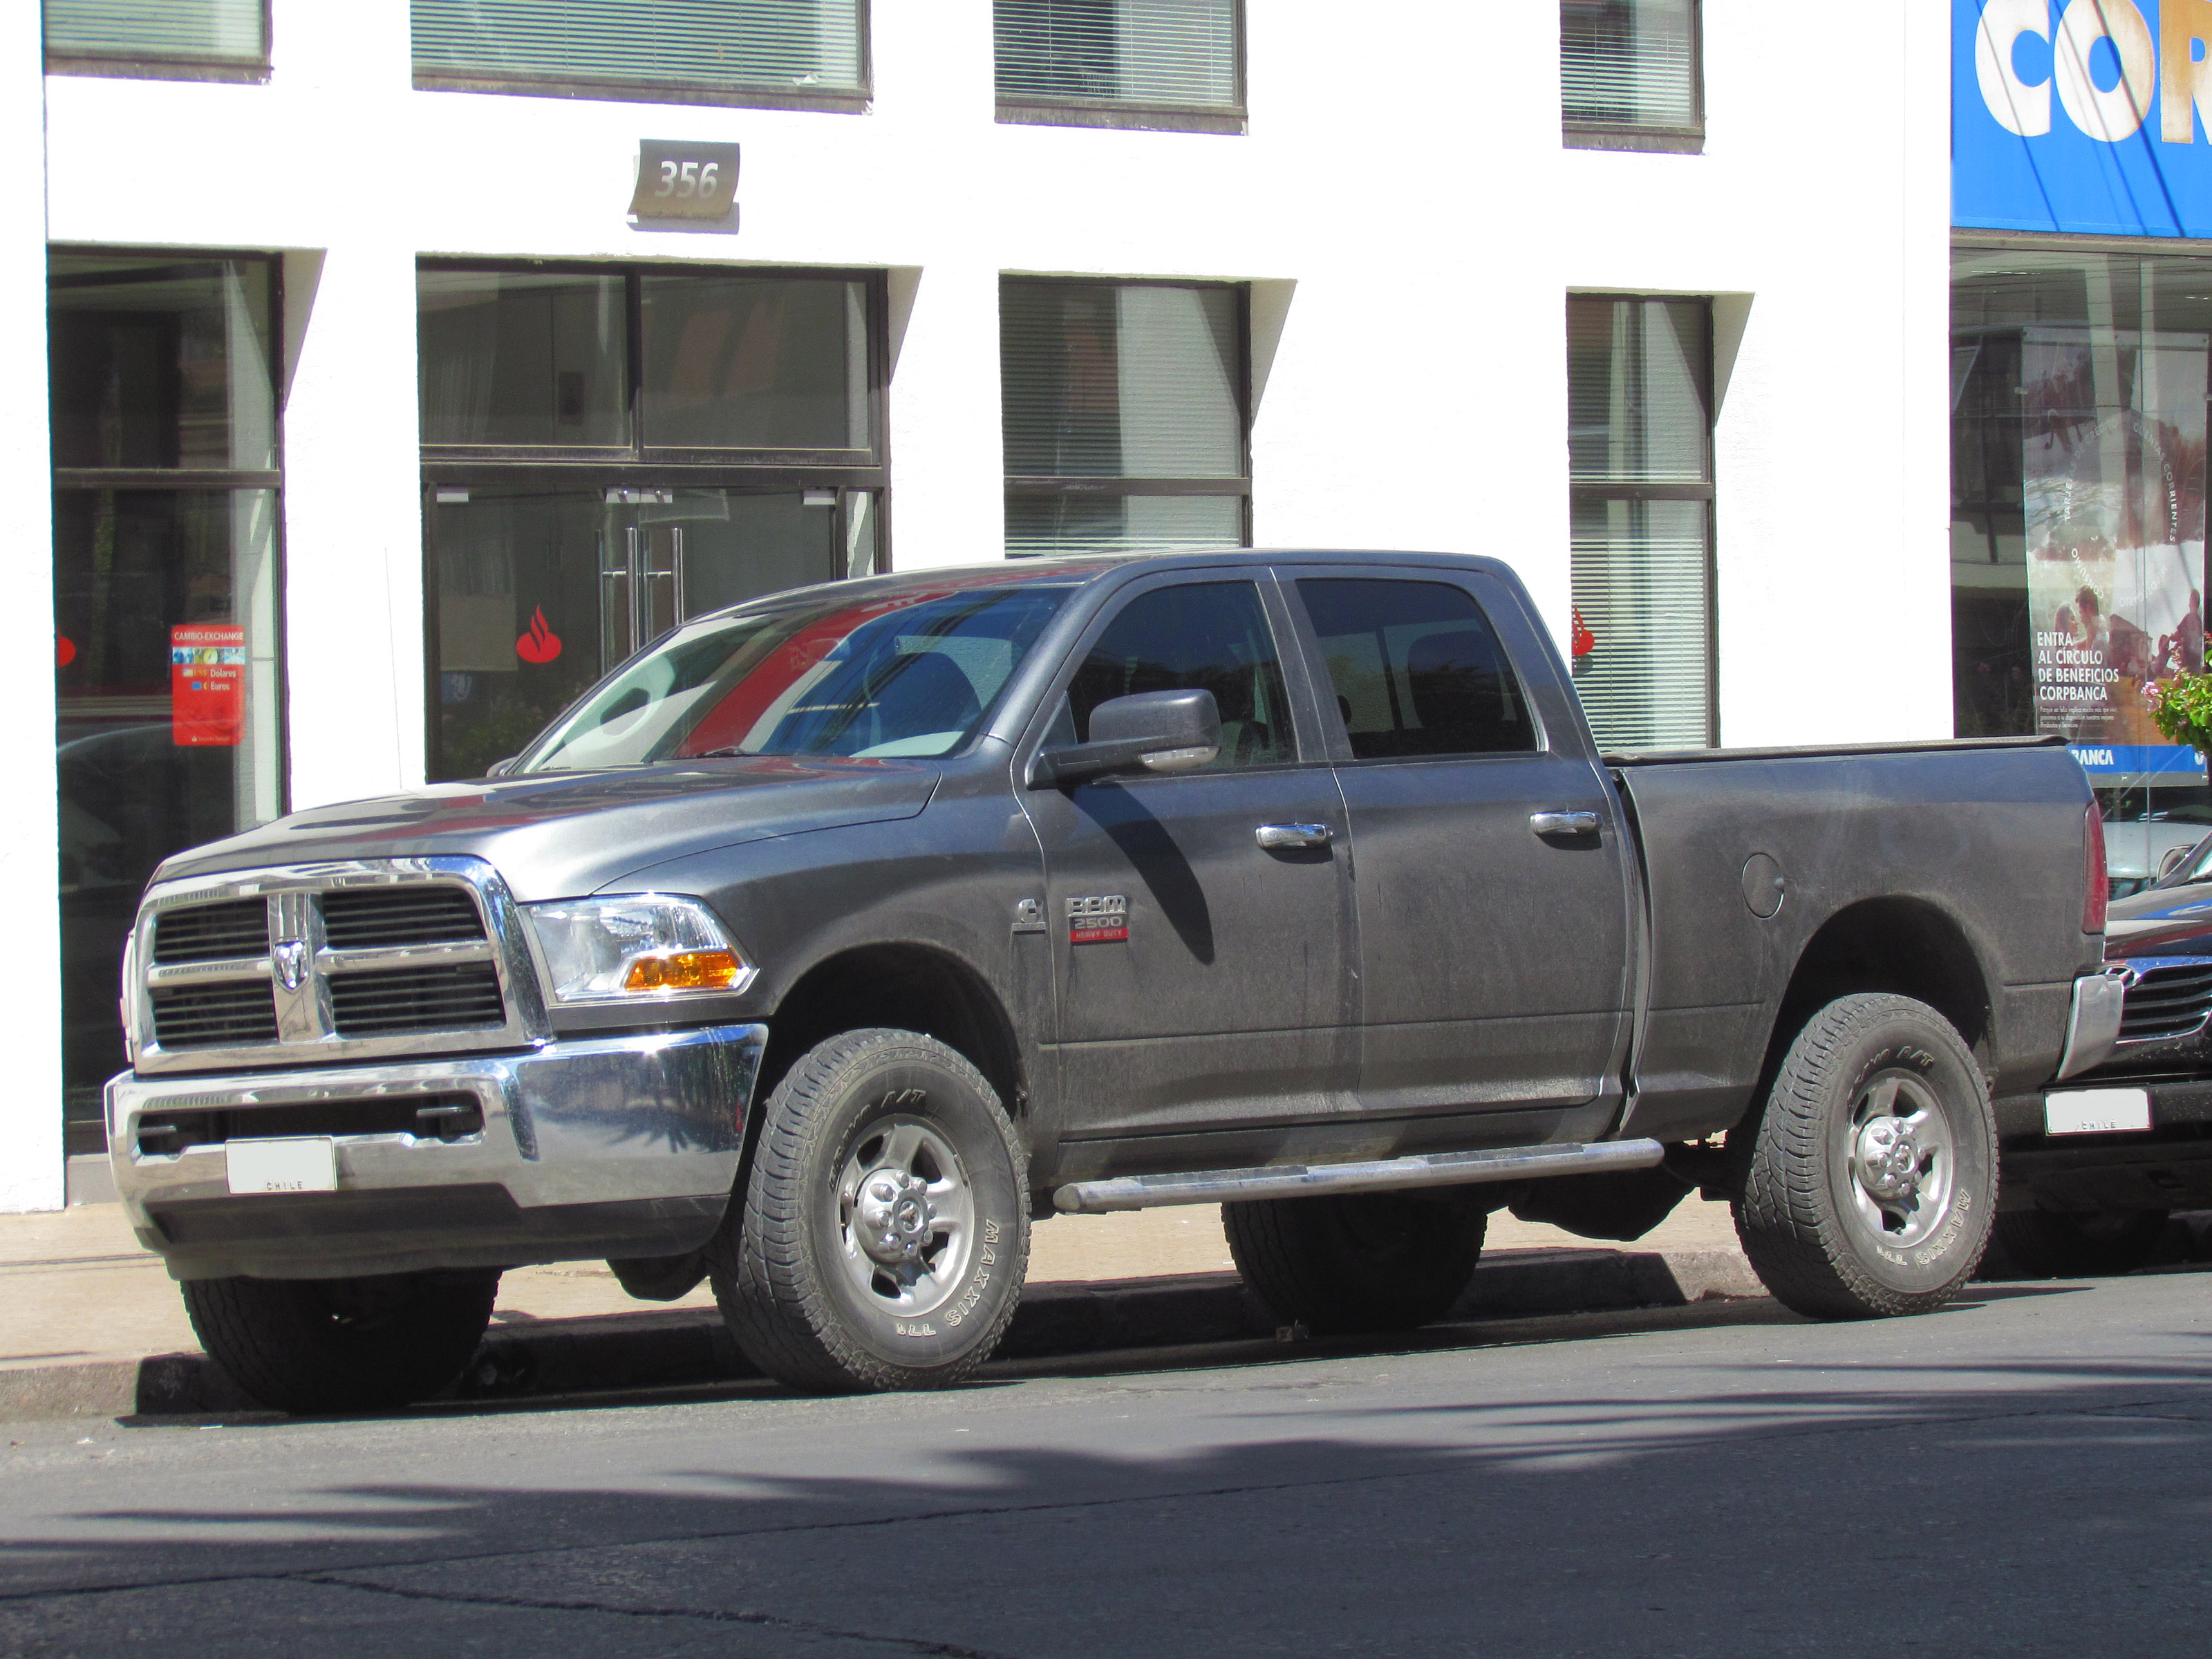 File Dodge Ram 2500 Slt Heavy Duty Quad Cab 2012 12530261853 Jpg Wikimedia Commons